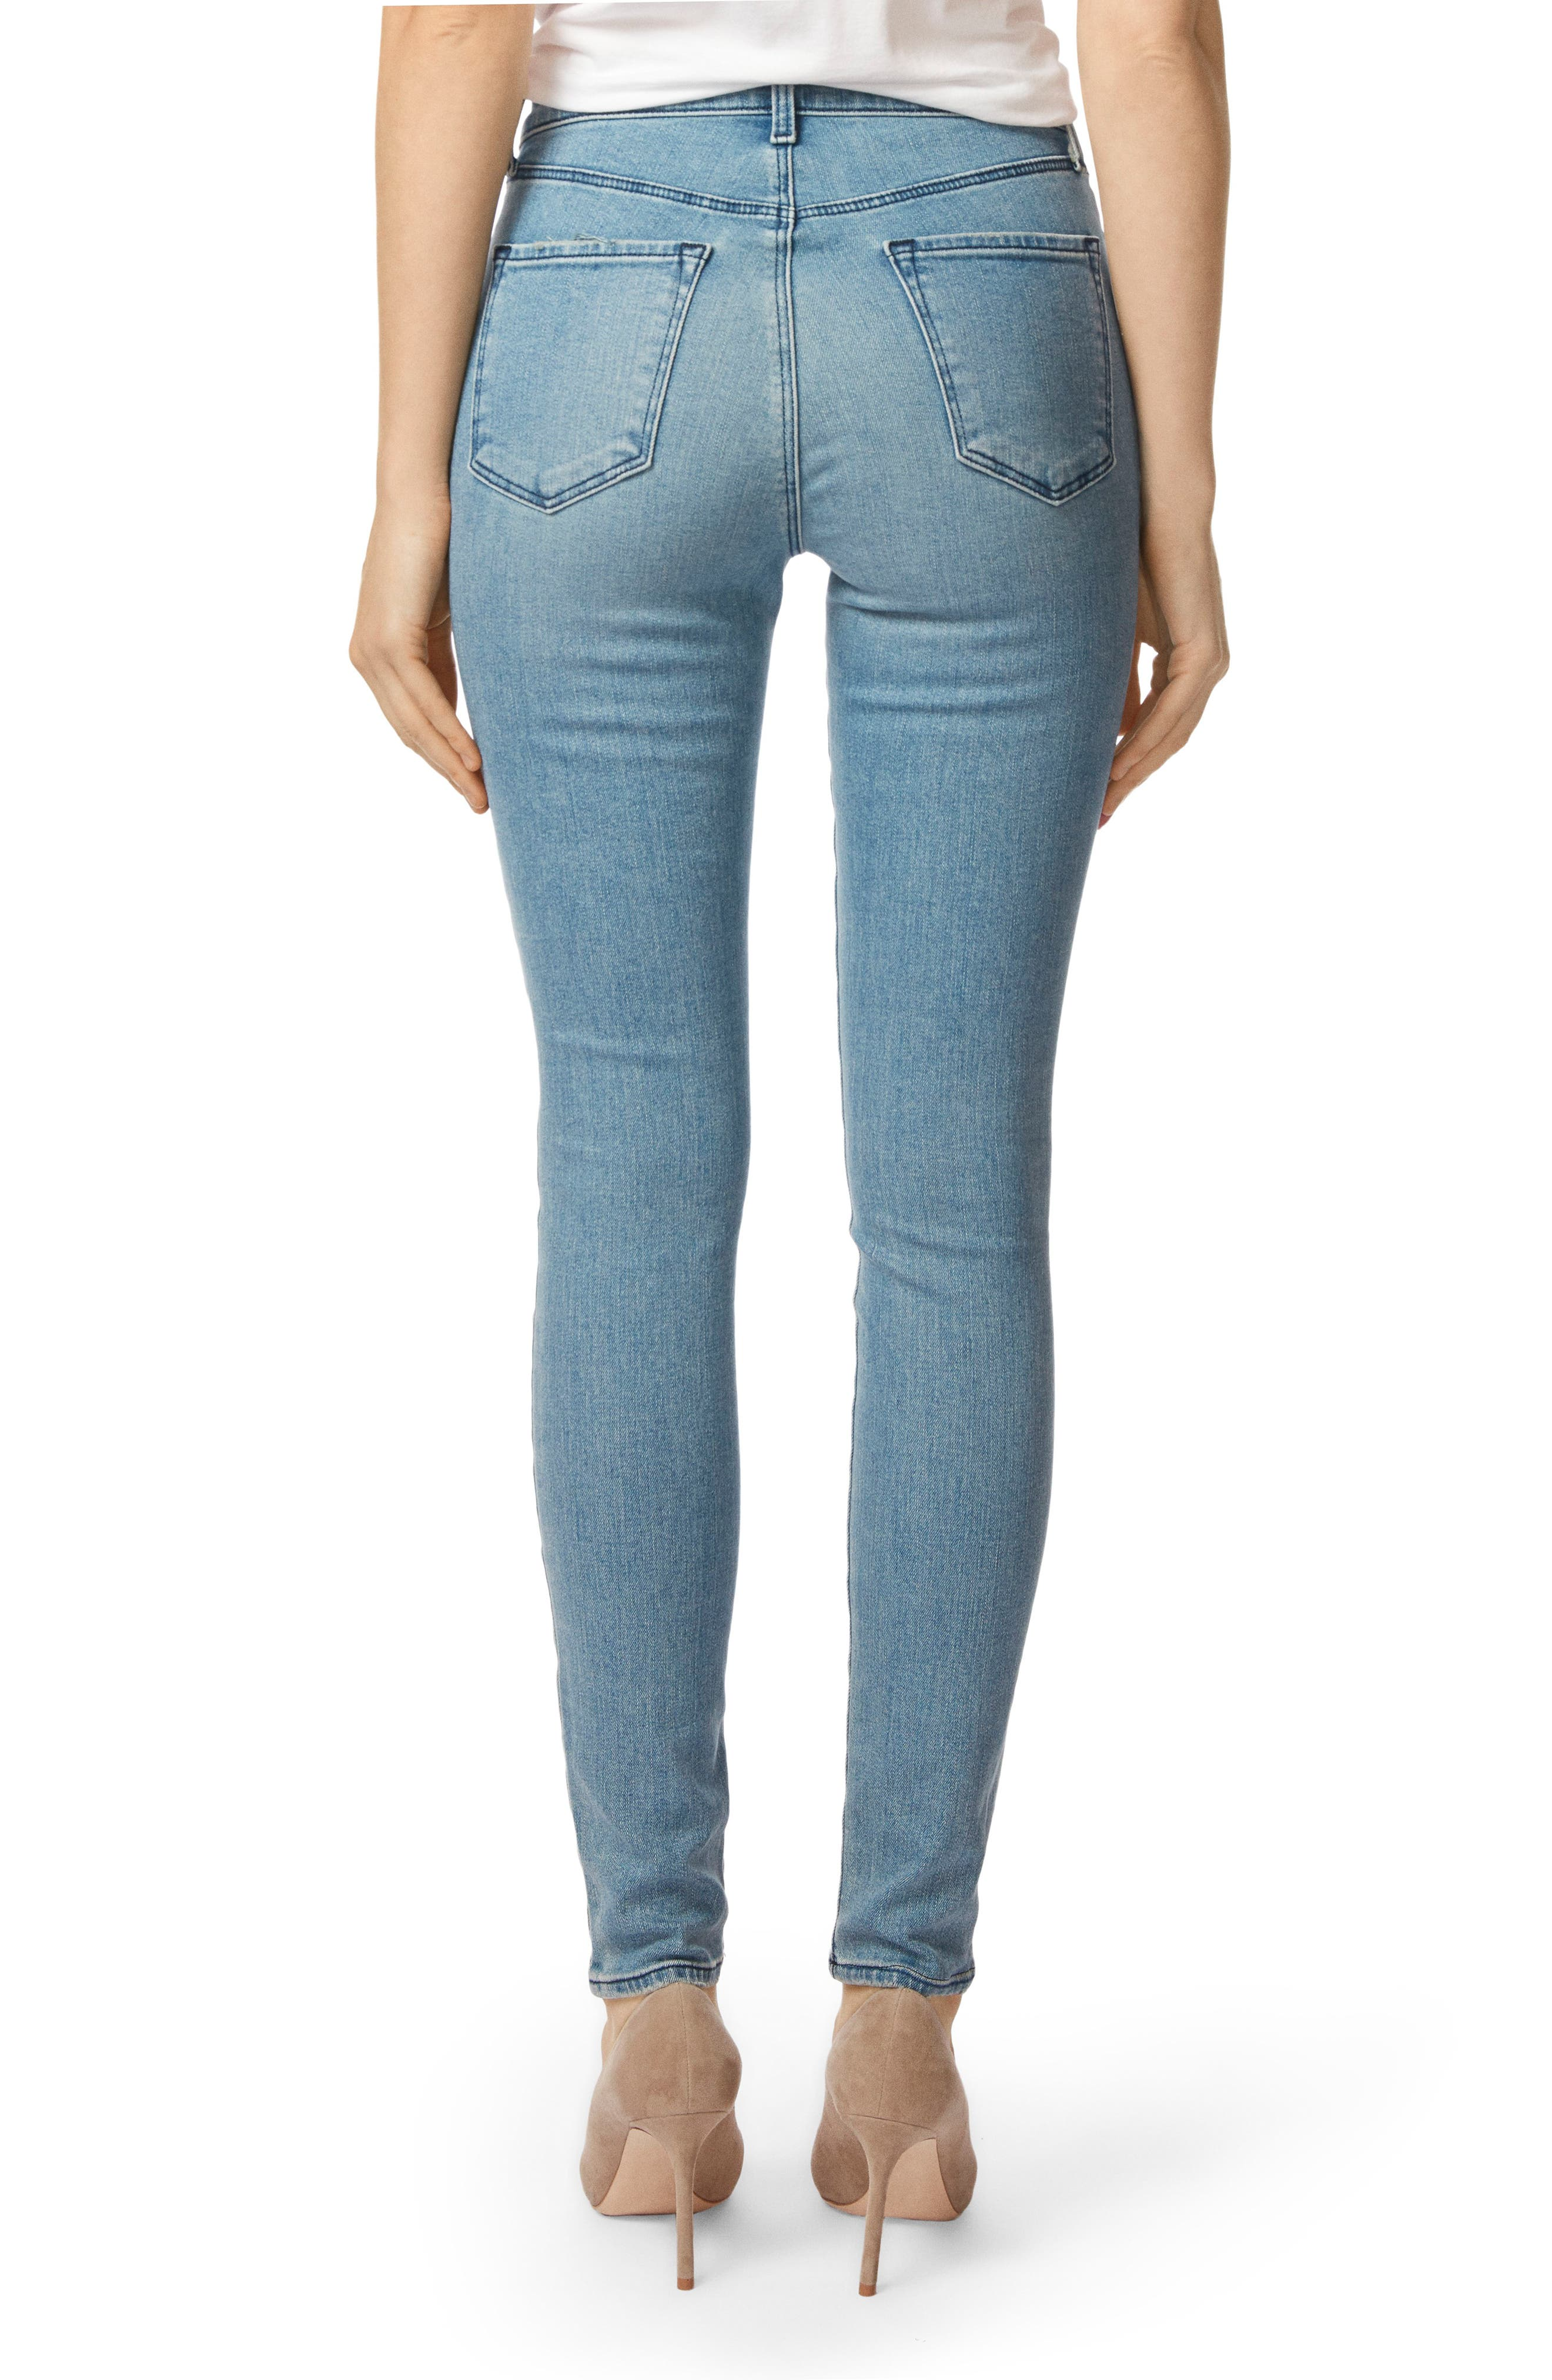 Maria High Waist Skinny Jeans,                             Alternate thumbnail 2, color,                             407